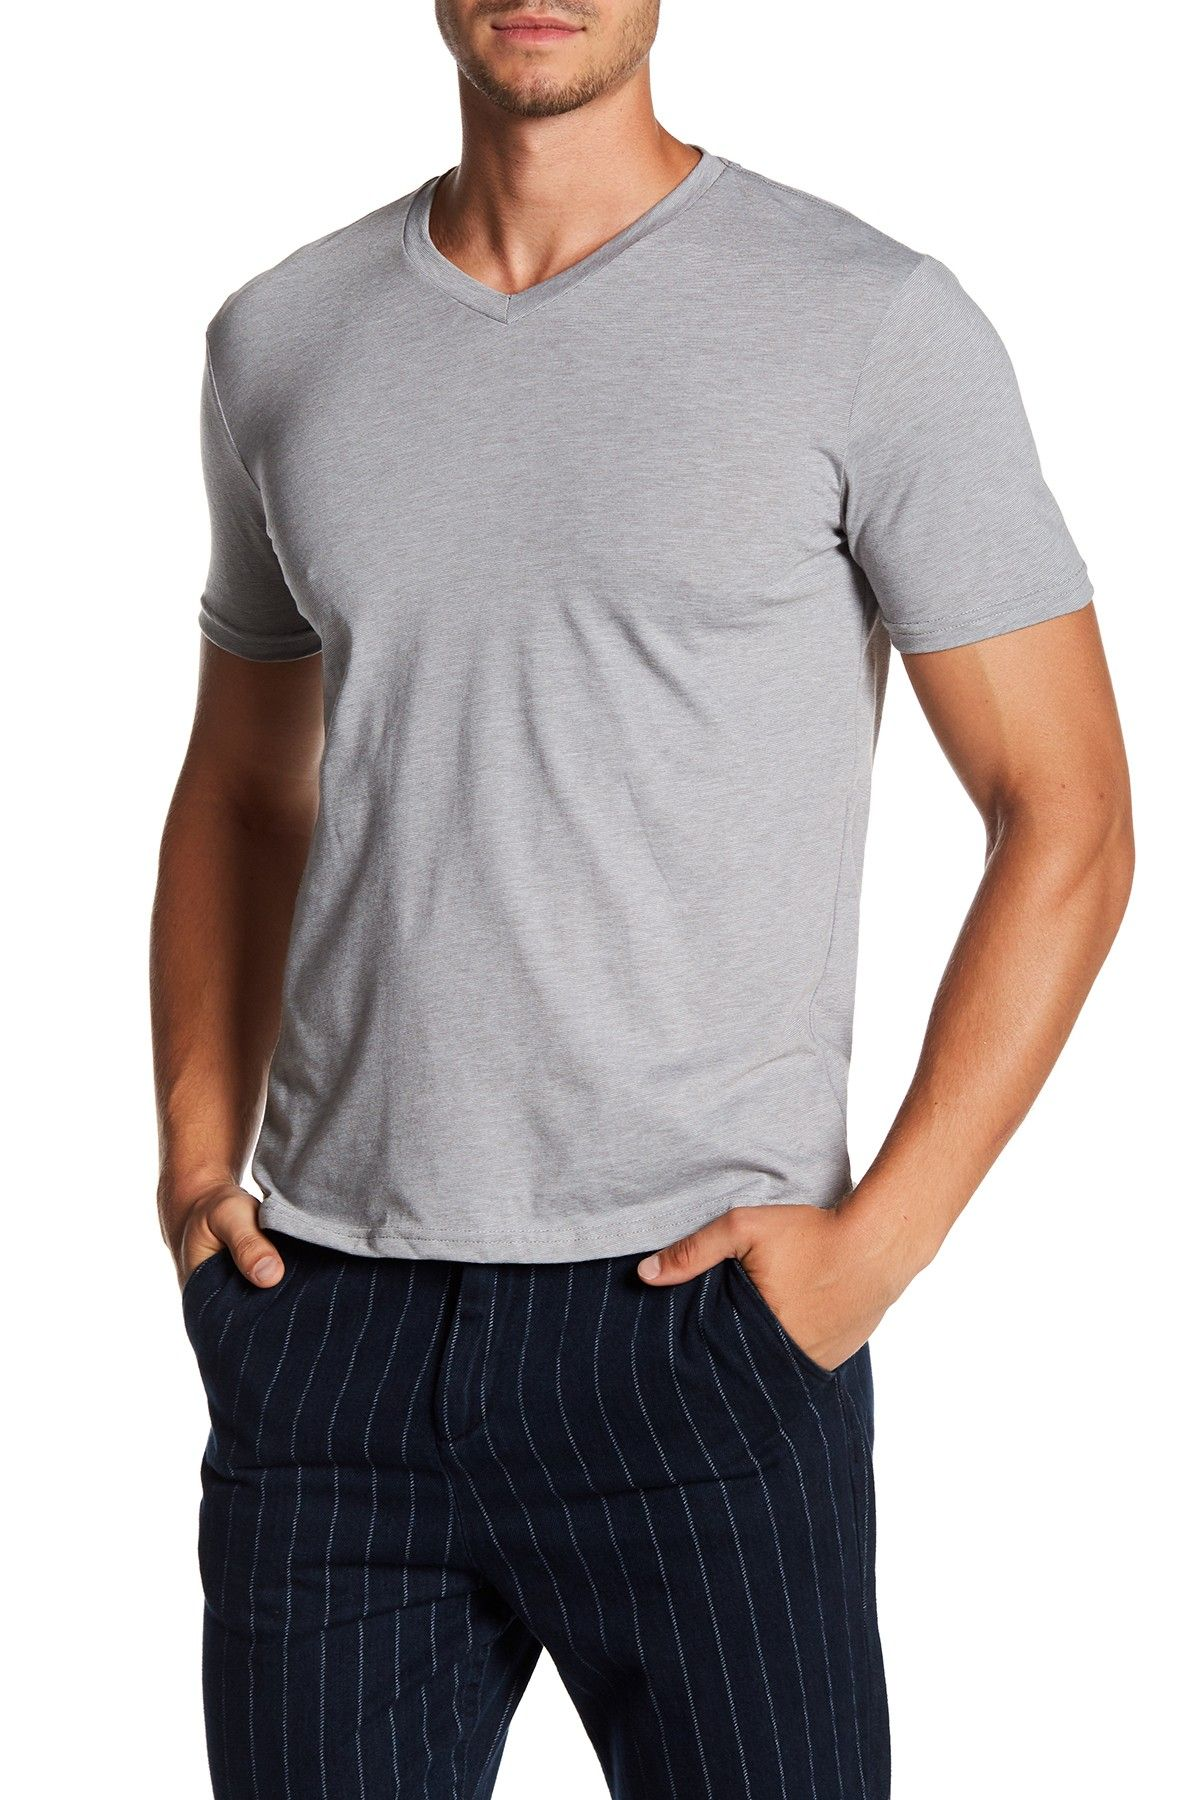 6f90703f8 Short Sleeve Fineline V-Neck Tee Mens Fashion Suits, Men's Fashion, Public  Opinion